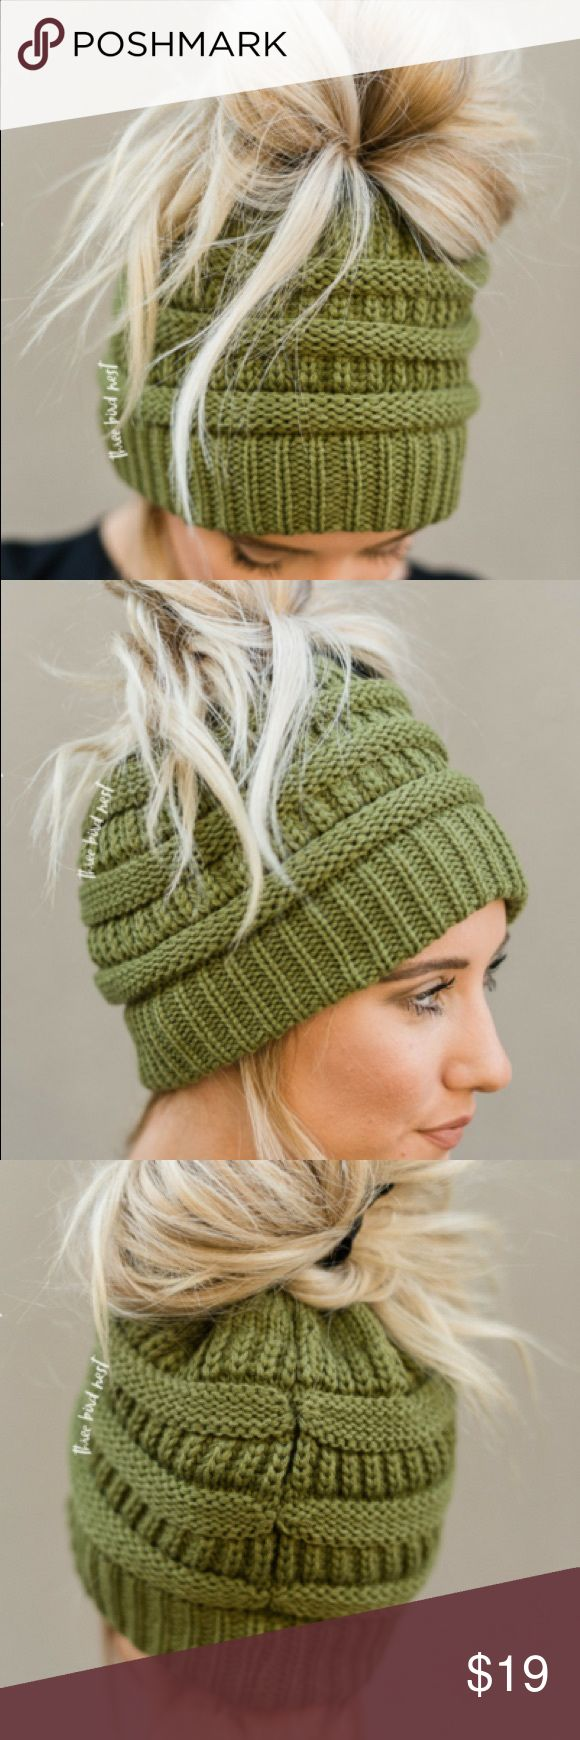 NWT Olive Messy Bun Ponytail CC C.C. Knit Beanie Messy bun/ponytail lovers and beanie wearers UNITE. You can now wear a messy bun or ponytail and a beanie all at the same time! Super cute and perfectly cozy this marled knitted acrylic yarn beanie with an elastic opening to pull your messy bun or ponytail through is a cold weather staple and answer to bad hair days. 50% Cotton, 50% Acrylic Accessories Hats